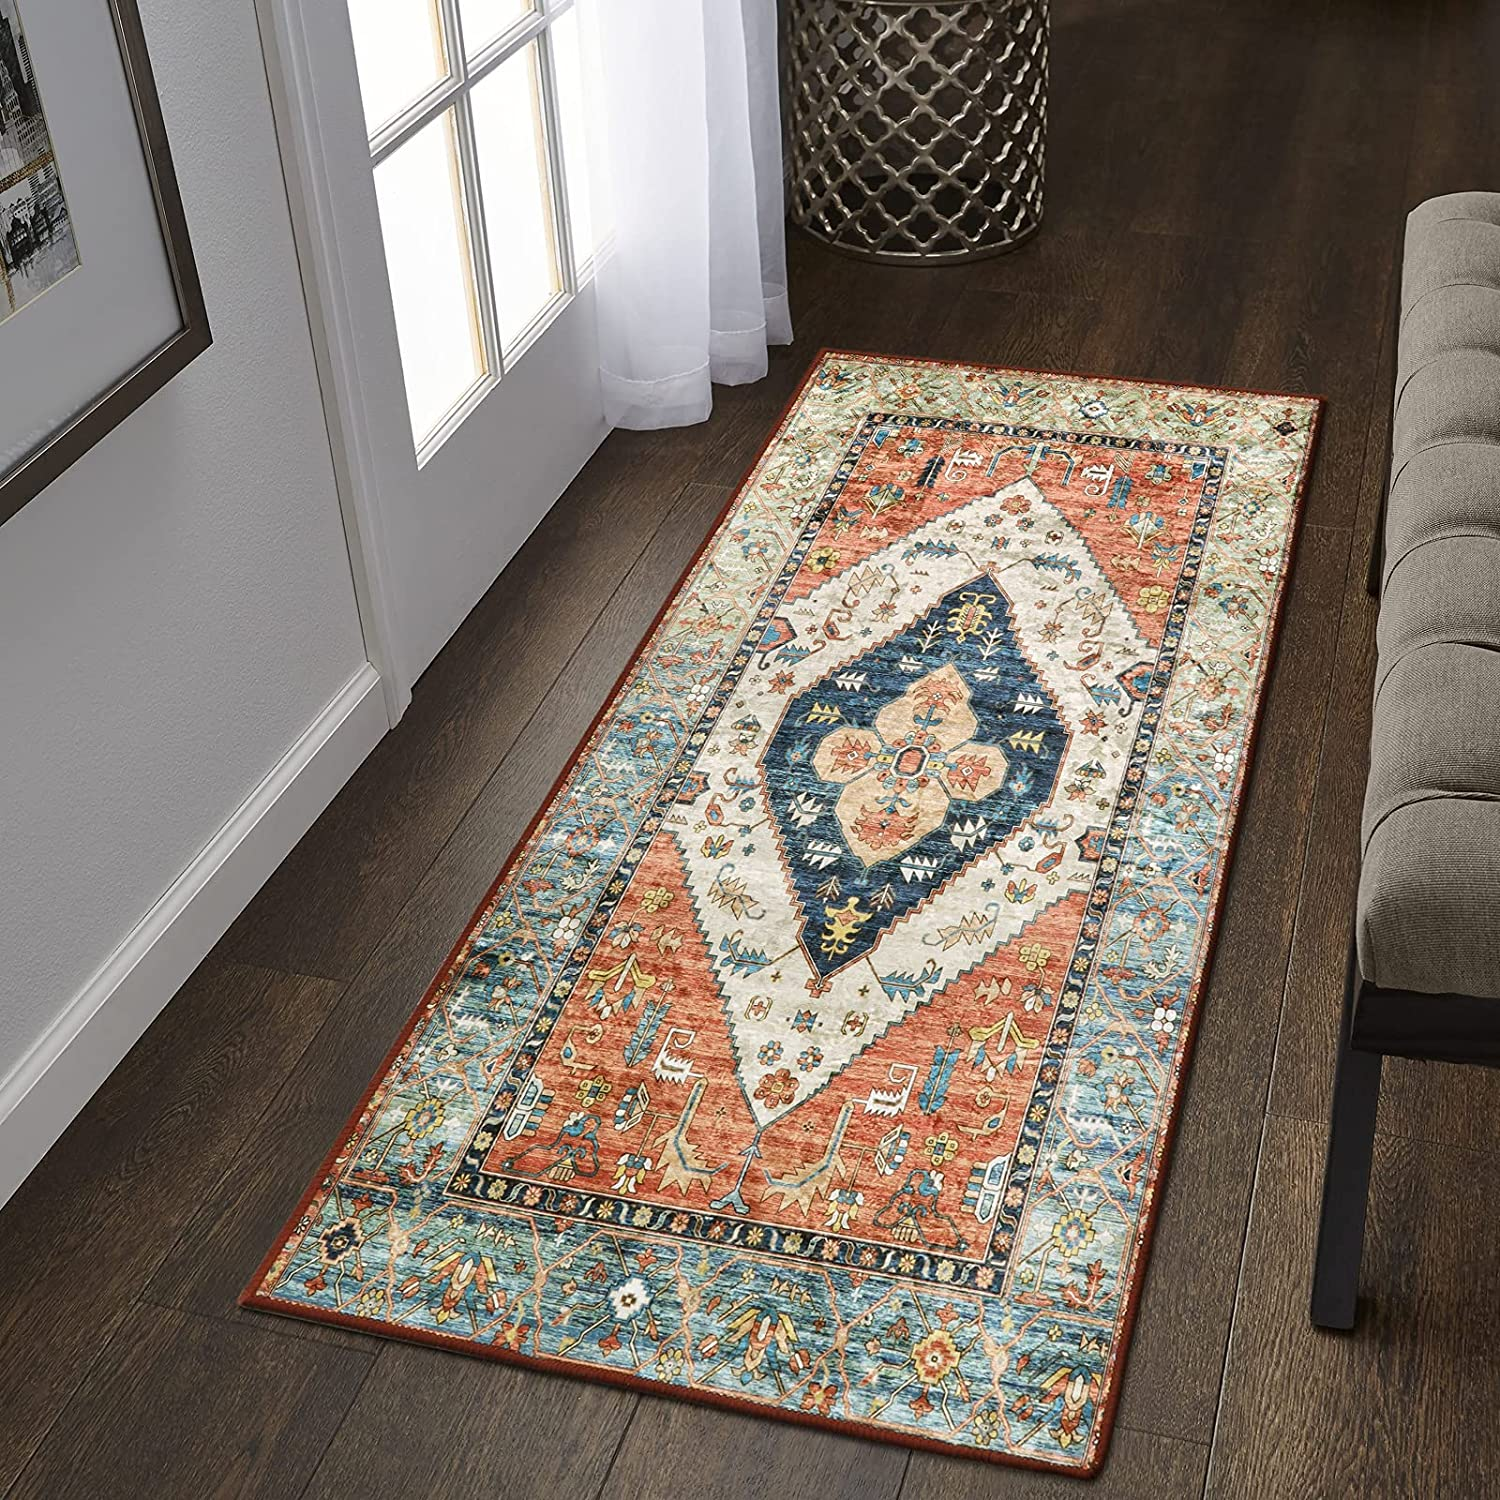 Lahome Collection Traditional Area Rug - Distressed Vintage Persian Oriental Area Rug Small Accent Throw Low Pile Rugs Floor Carpet for Door Mat Entryway Bedrooms Decor (2' X 4', Persian Formal)